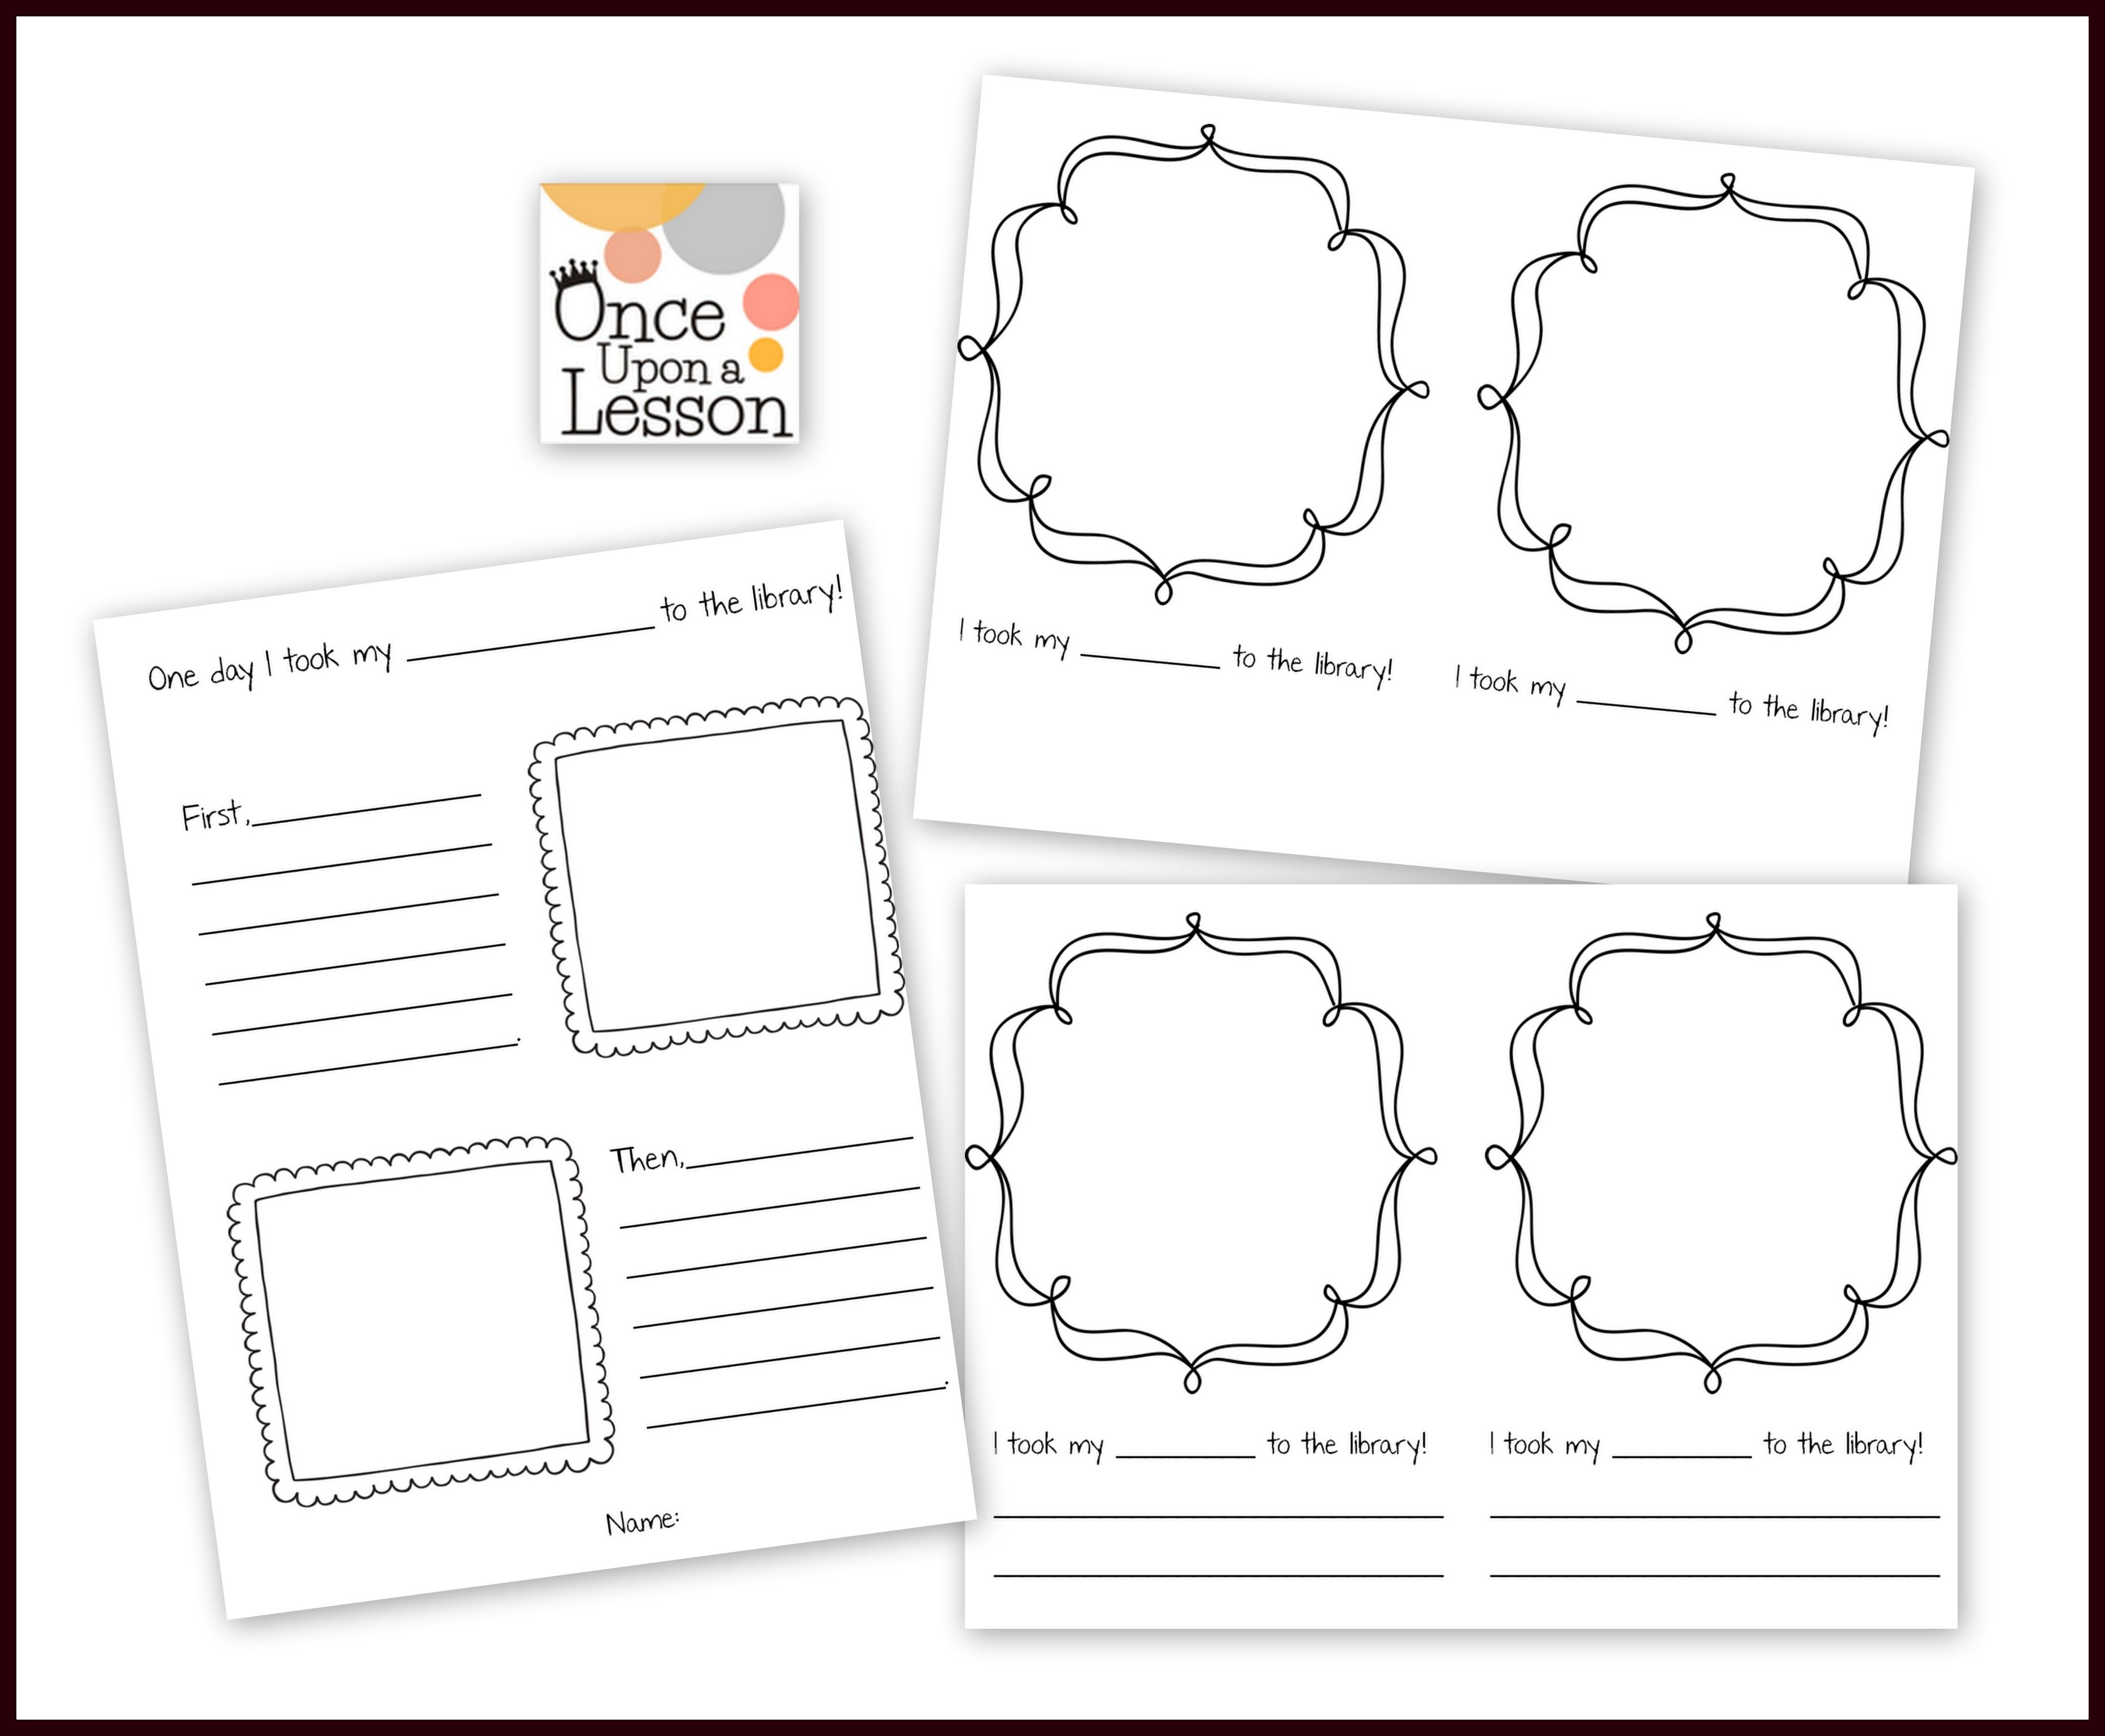 A Free Activity Download And Print To Use In The